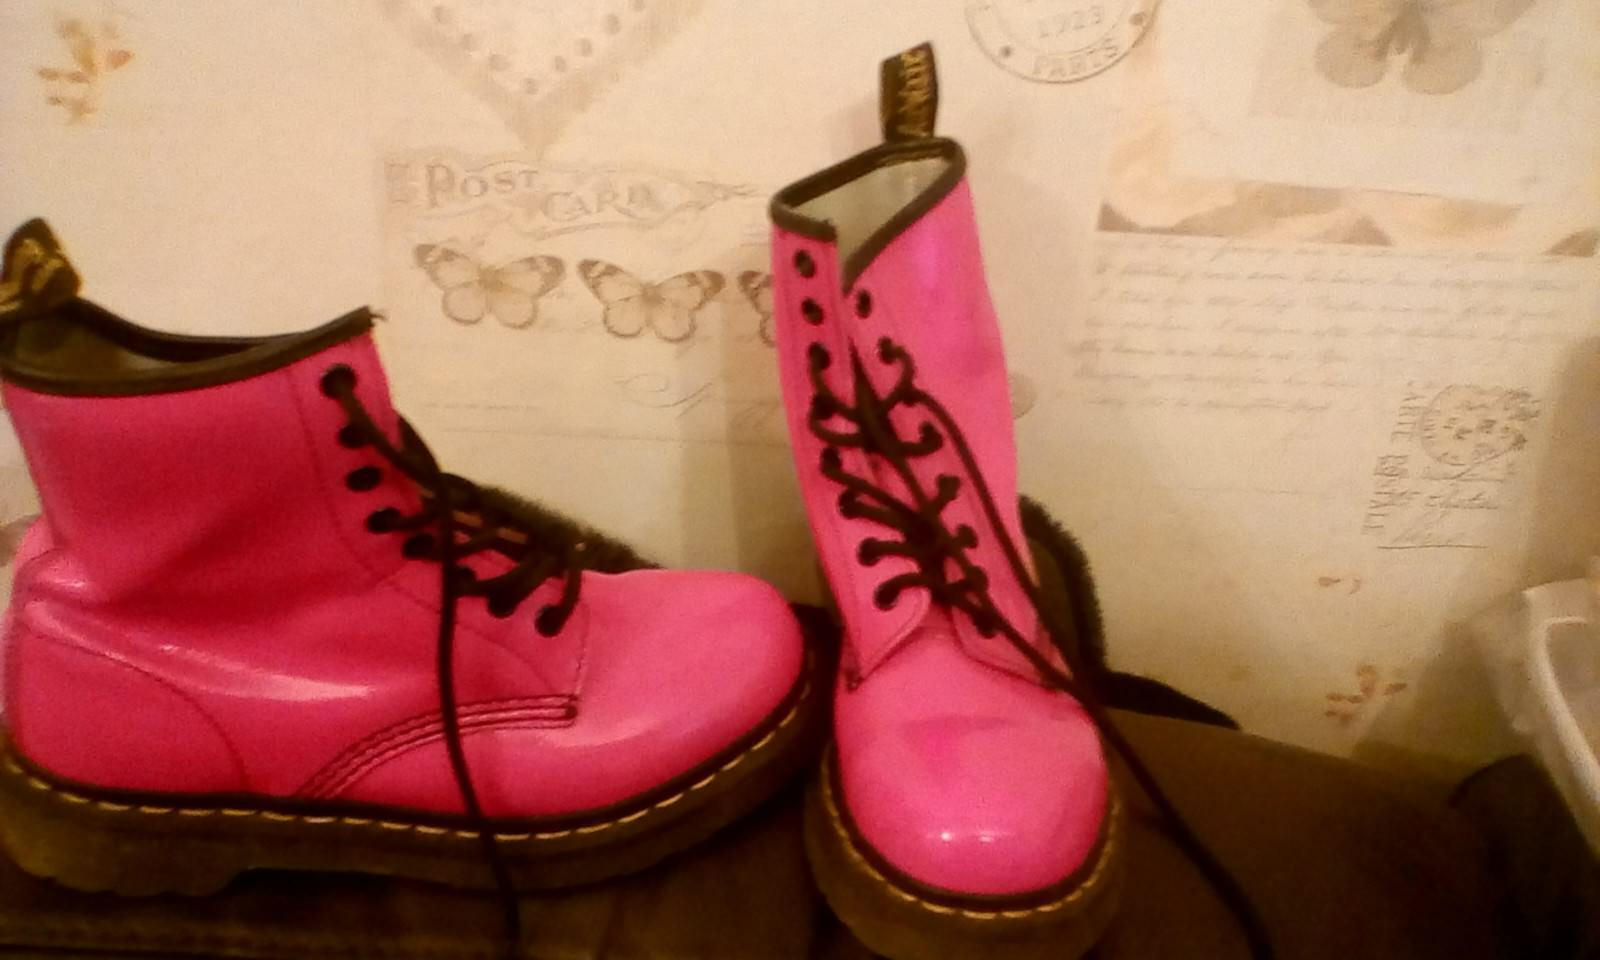 DR DOCTOR MARTENS AIR WAIR PINK RUBBER BOOTS LIGHTLY UNBOXED USED UK SIZE 4 UNBOXED LIGHTLY 5eaf2e